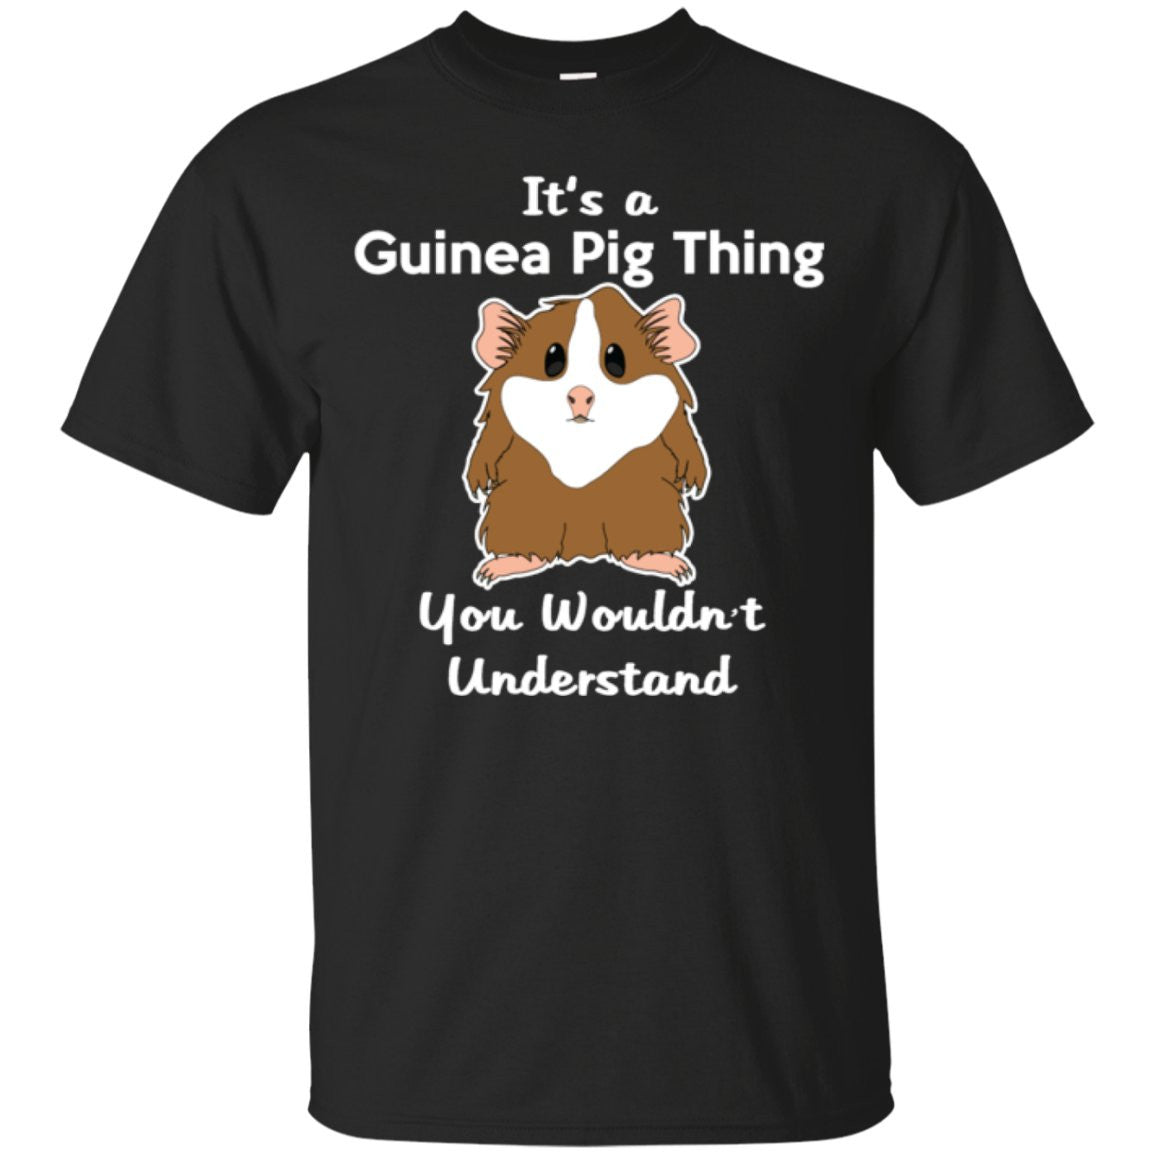 It's A Guinea Pig Thing You Wouldn't Understand